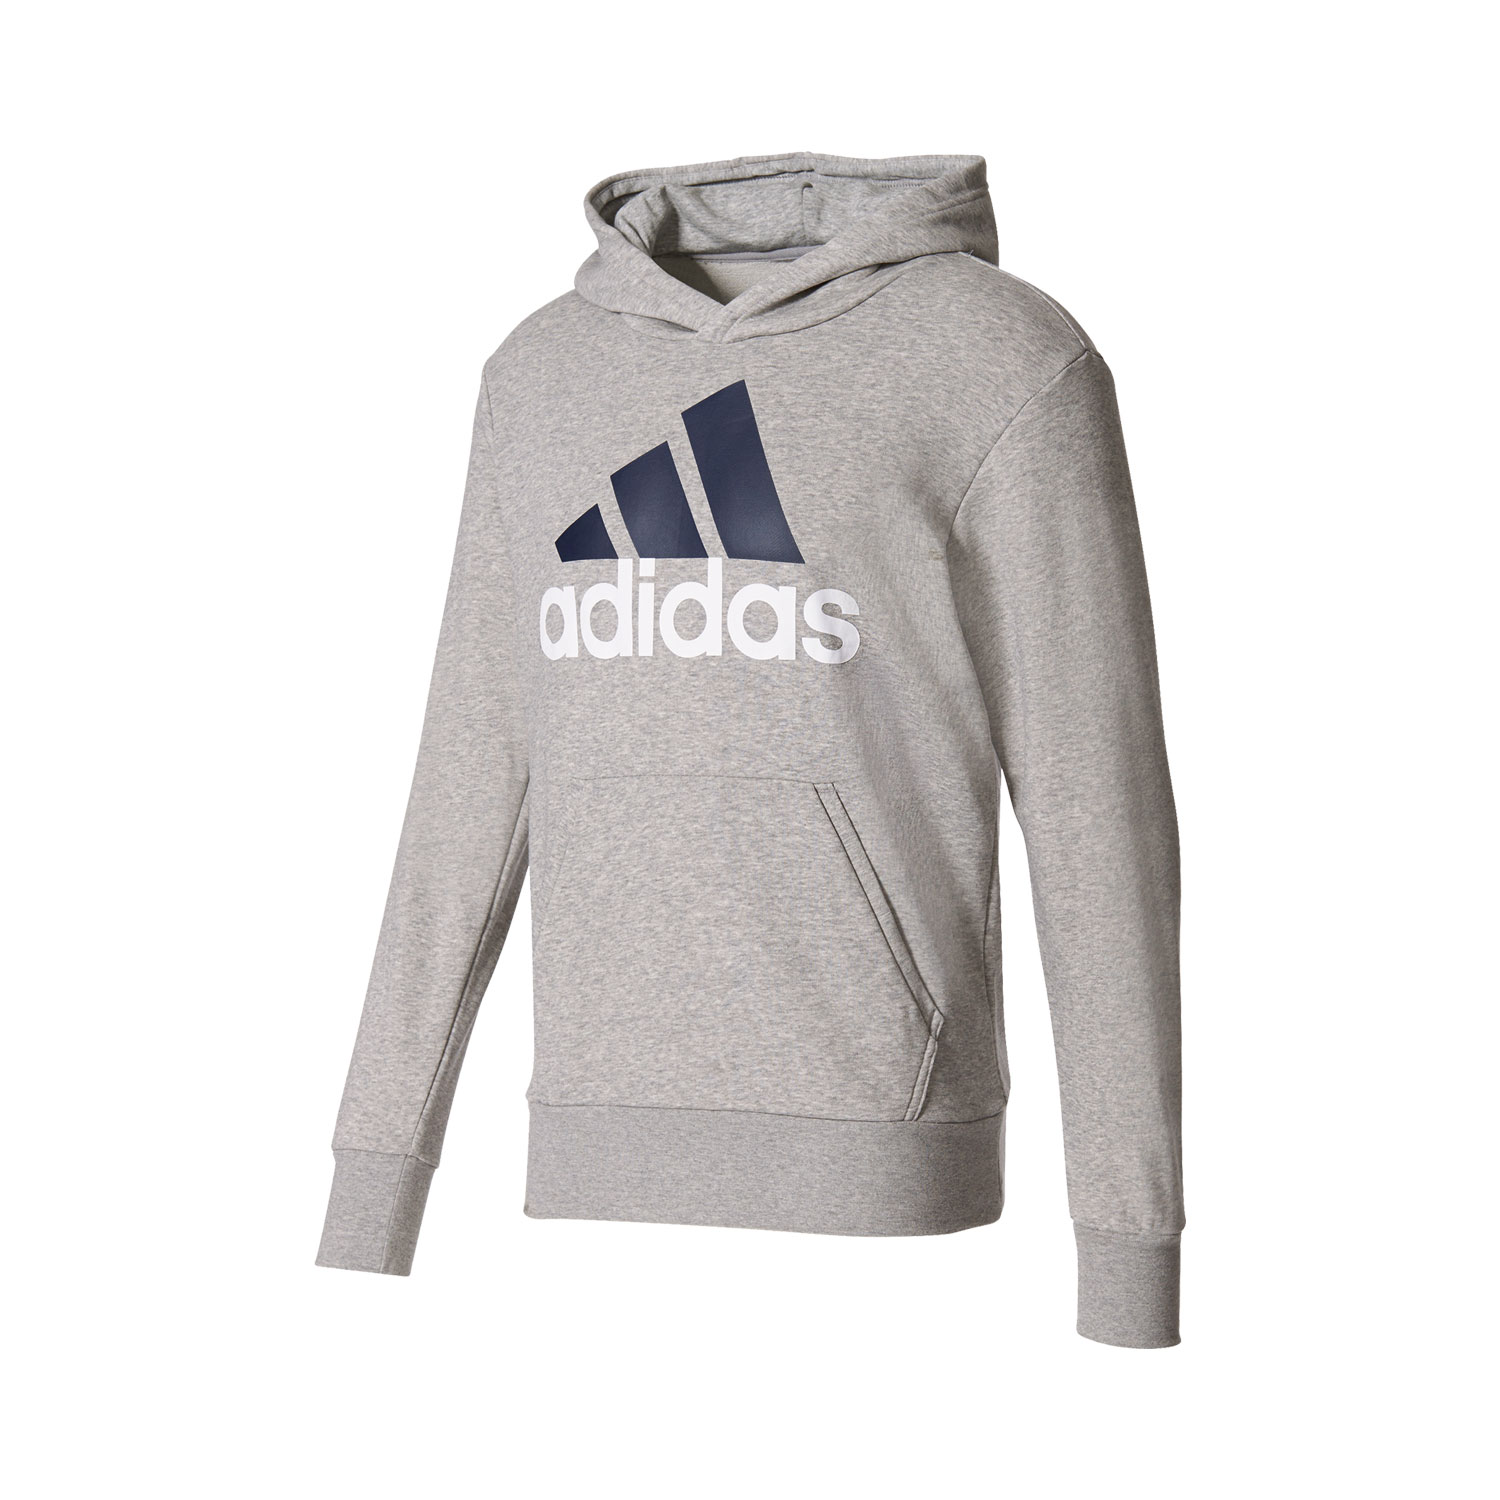 adidas essentials linear pullover herren hoody herren bekleidung sweatshirts kapuzenpullover. Black Bedroom Furniture Sets. Home Design Ideas